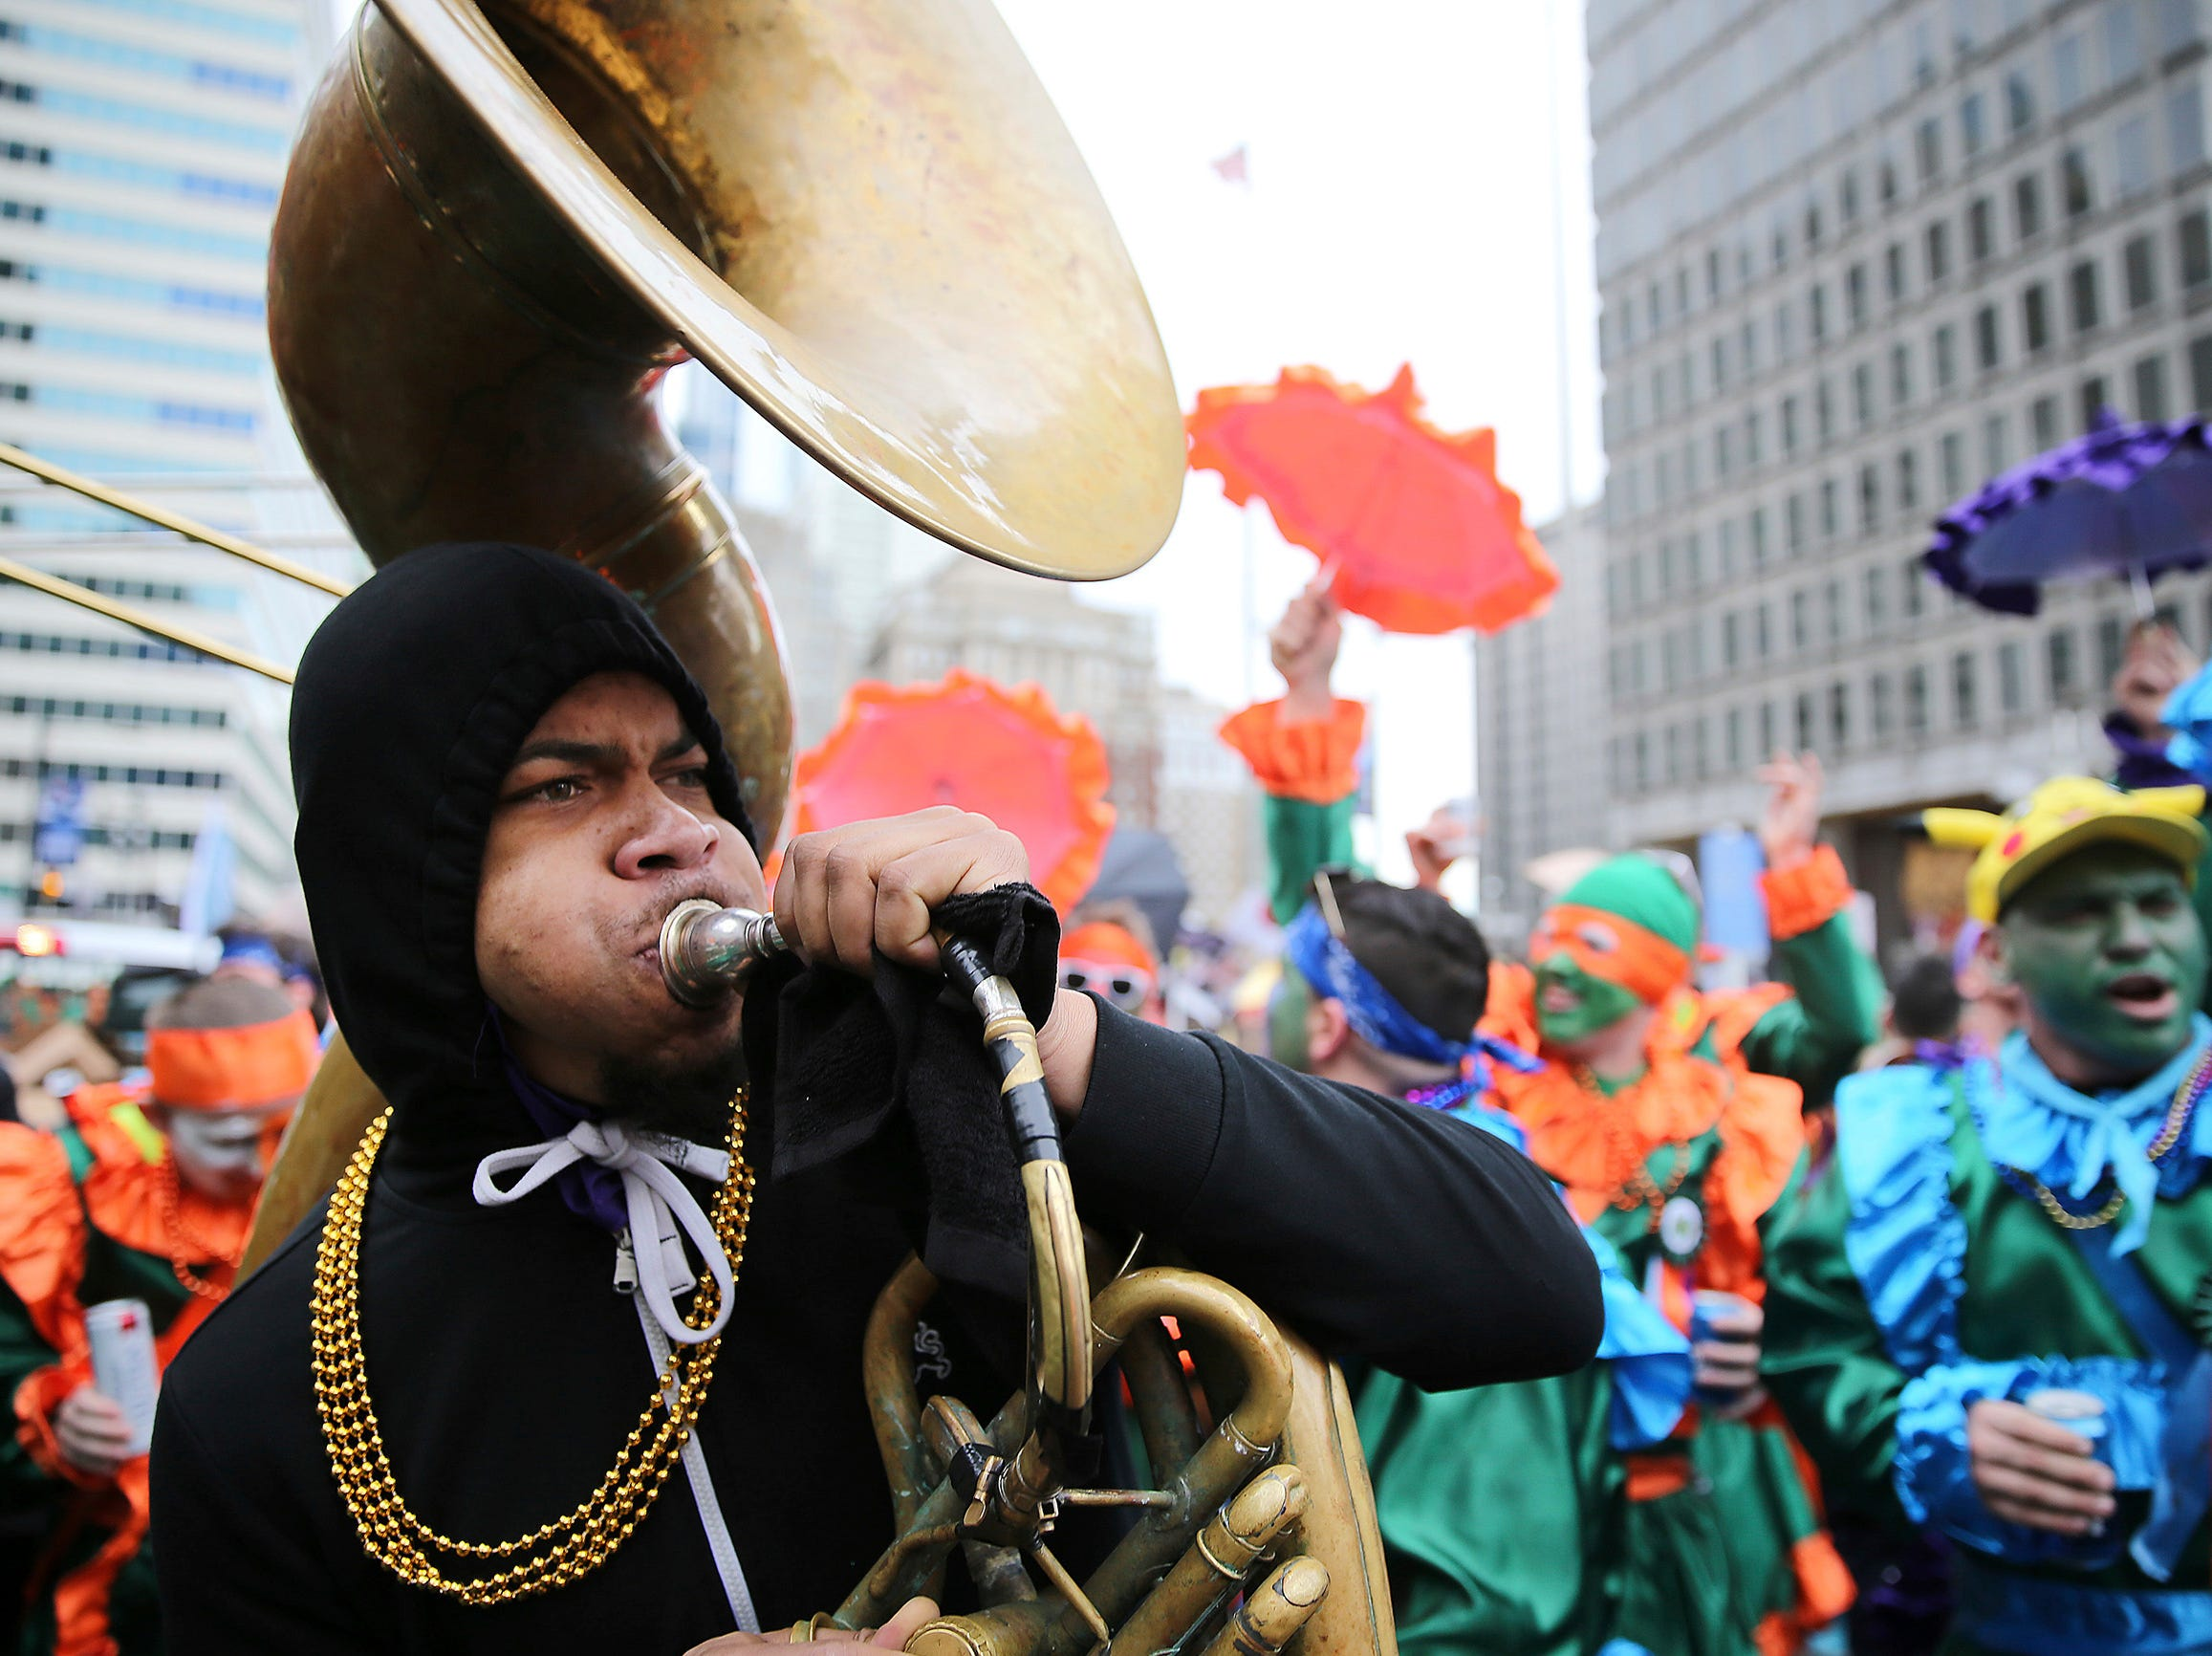 Devoe White plays a sousaphone as members of the Saints Wench Brigade dance in front of City Hall during the Mummers Parade, Tuesday, Jan. 1, 2019, in Philadelphia. (David Maialetti/The Philadelphia Inquirer via AP)